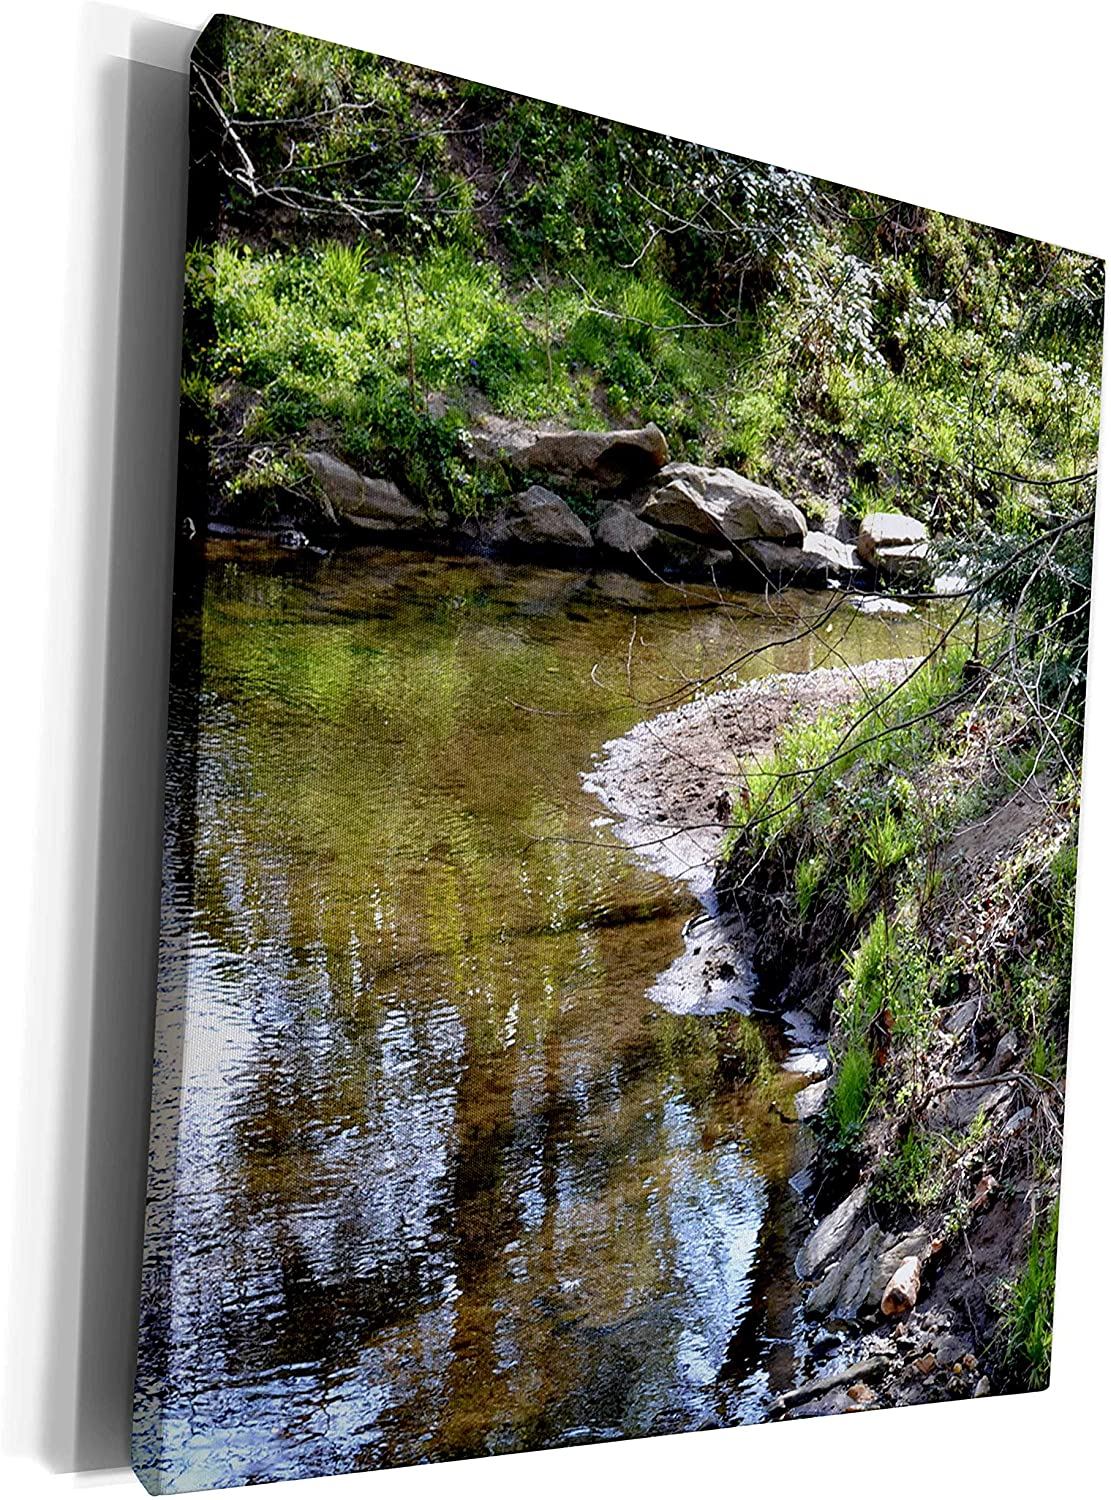 3dRose ET Photography - Nature Scenes - Beauty within a Creek A creek scene at the NC Botanical Gardens - Museum Grade Canvas Wrap (cw_127817_1)